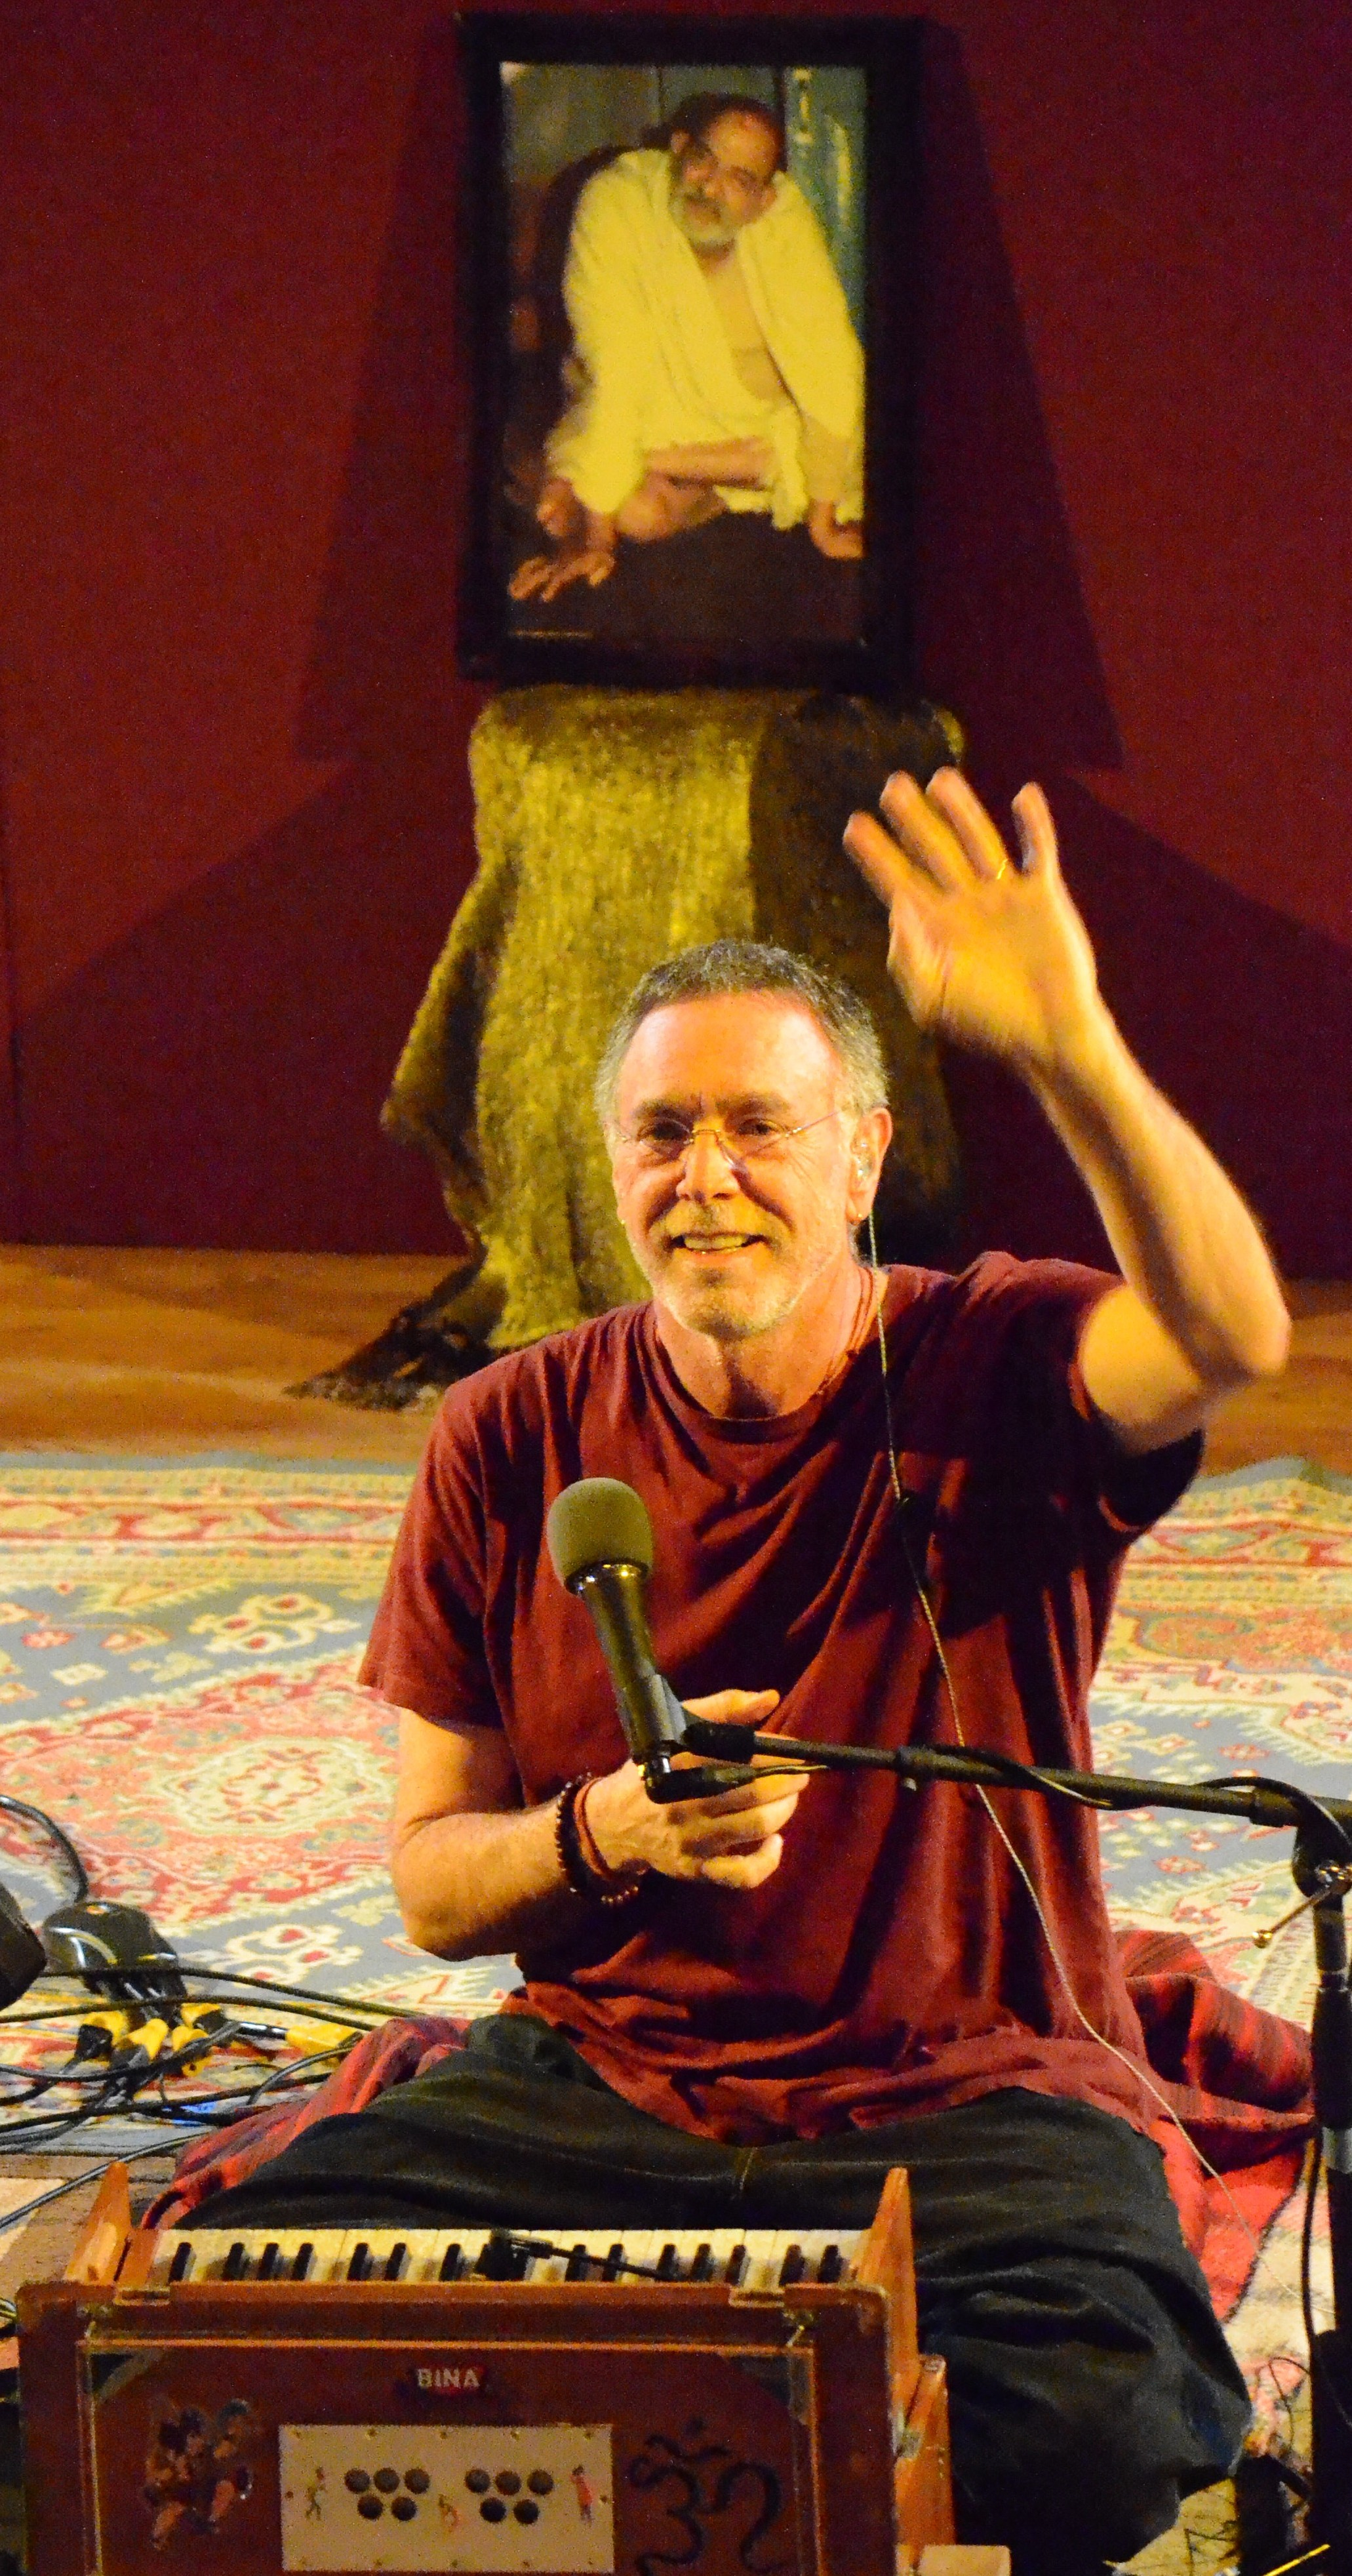 Krishna Das, Chantmaster, at Chantlanta, by TheBhaktiBeat.com